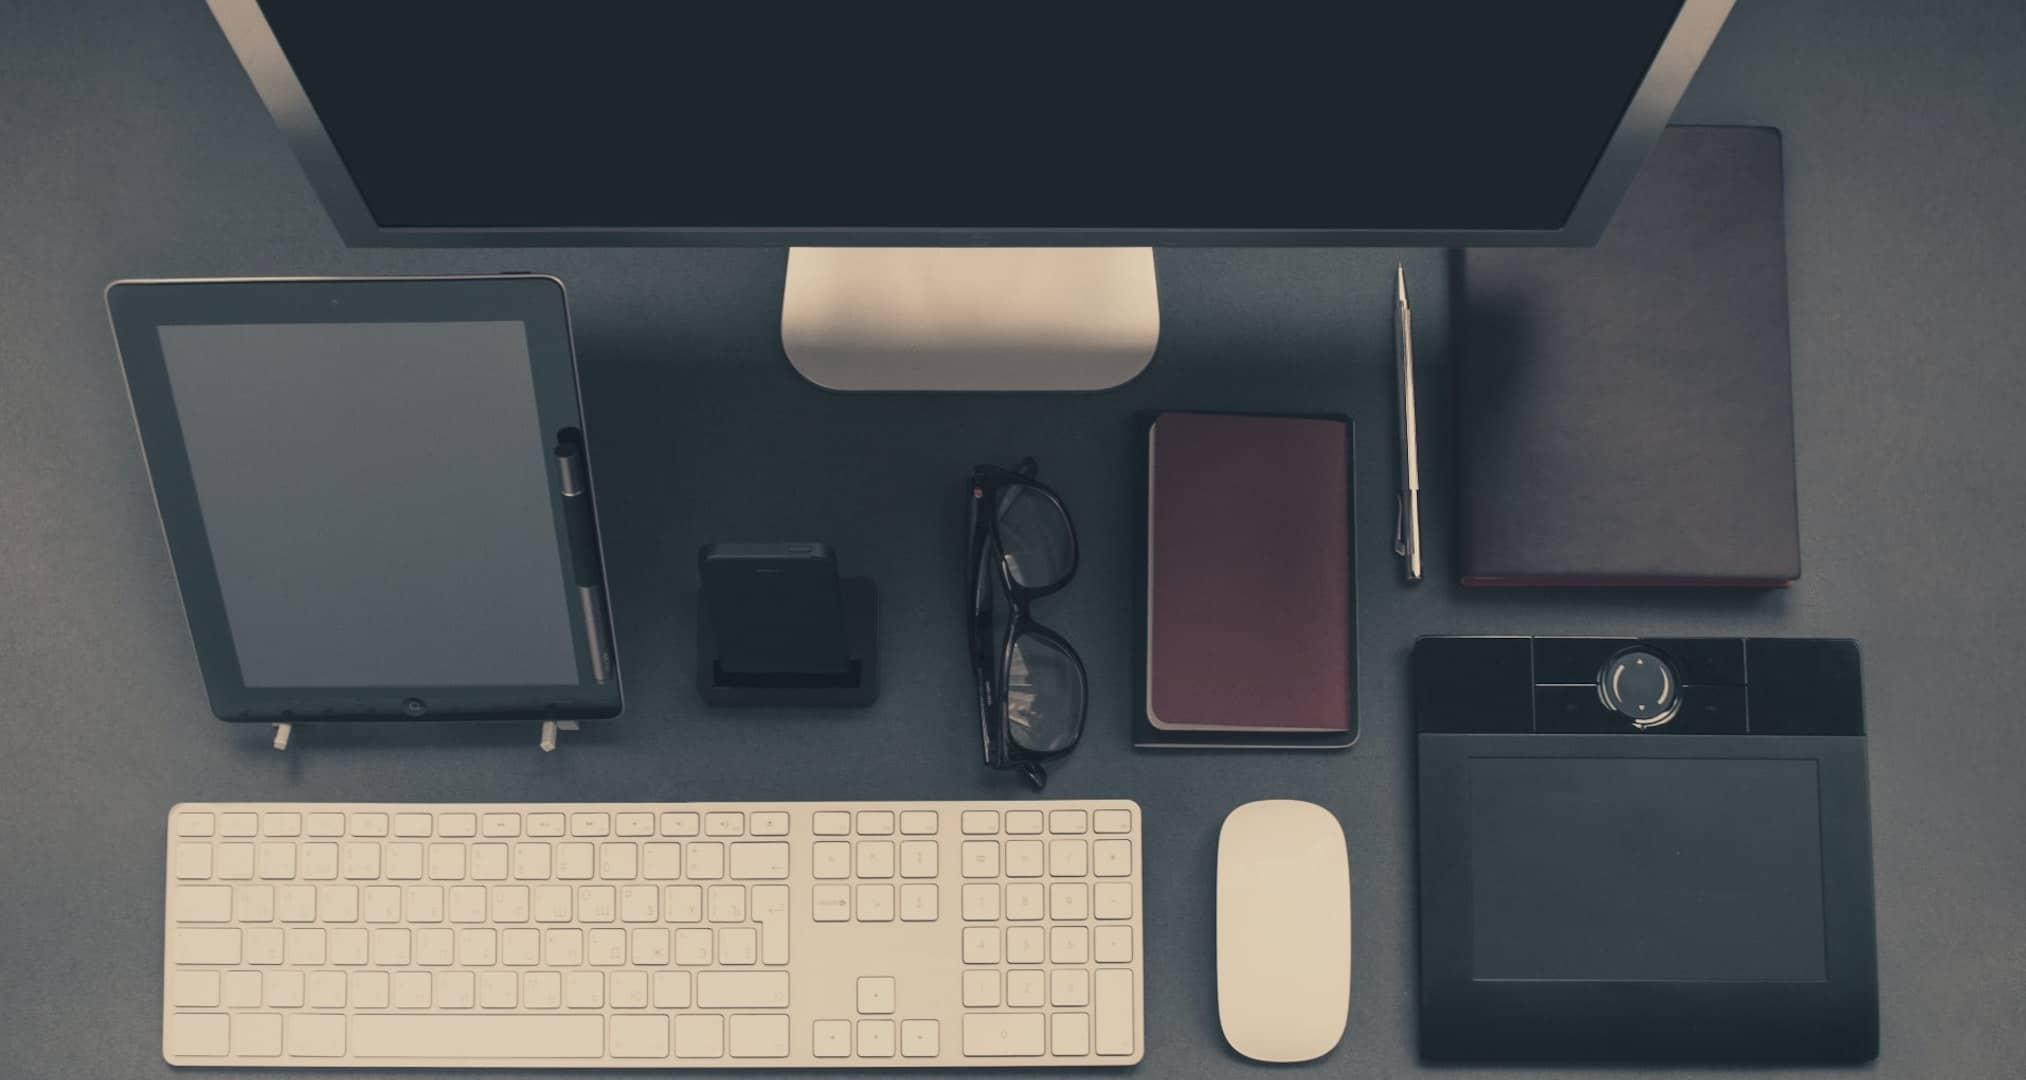 organized desk with all items needed for a productive day